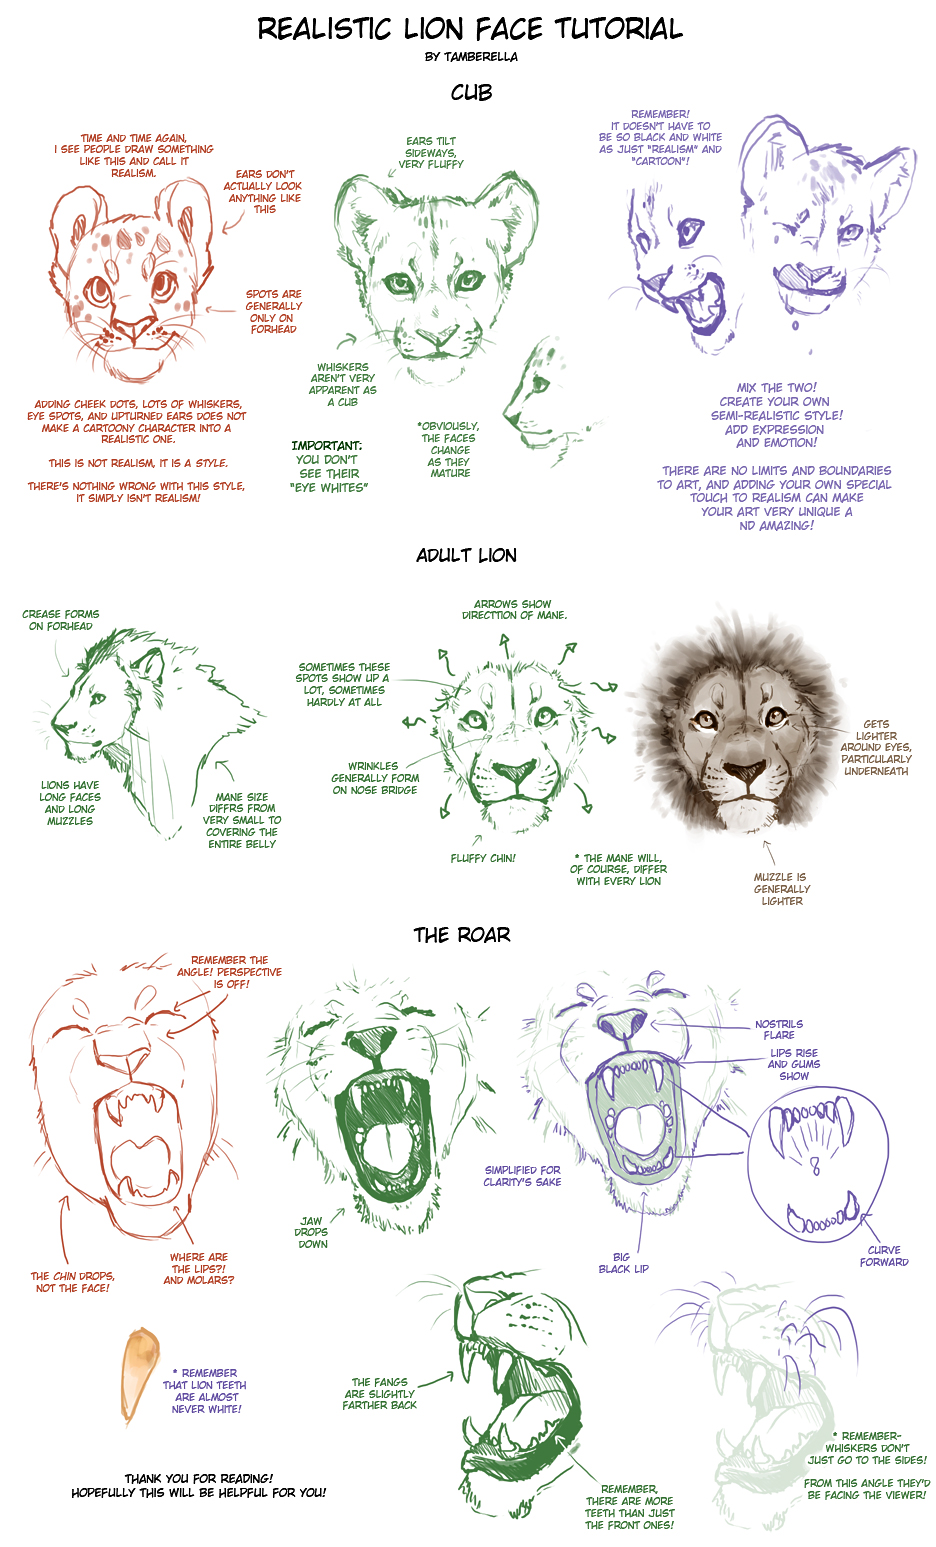 Realistic Lion Face Tutorial By Tamberella On Deviantart 1024x829 pencil sketch of roaring lion realistic lion drawing pencil. realistic lion face tutorial by